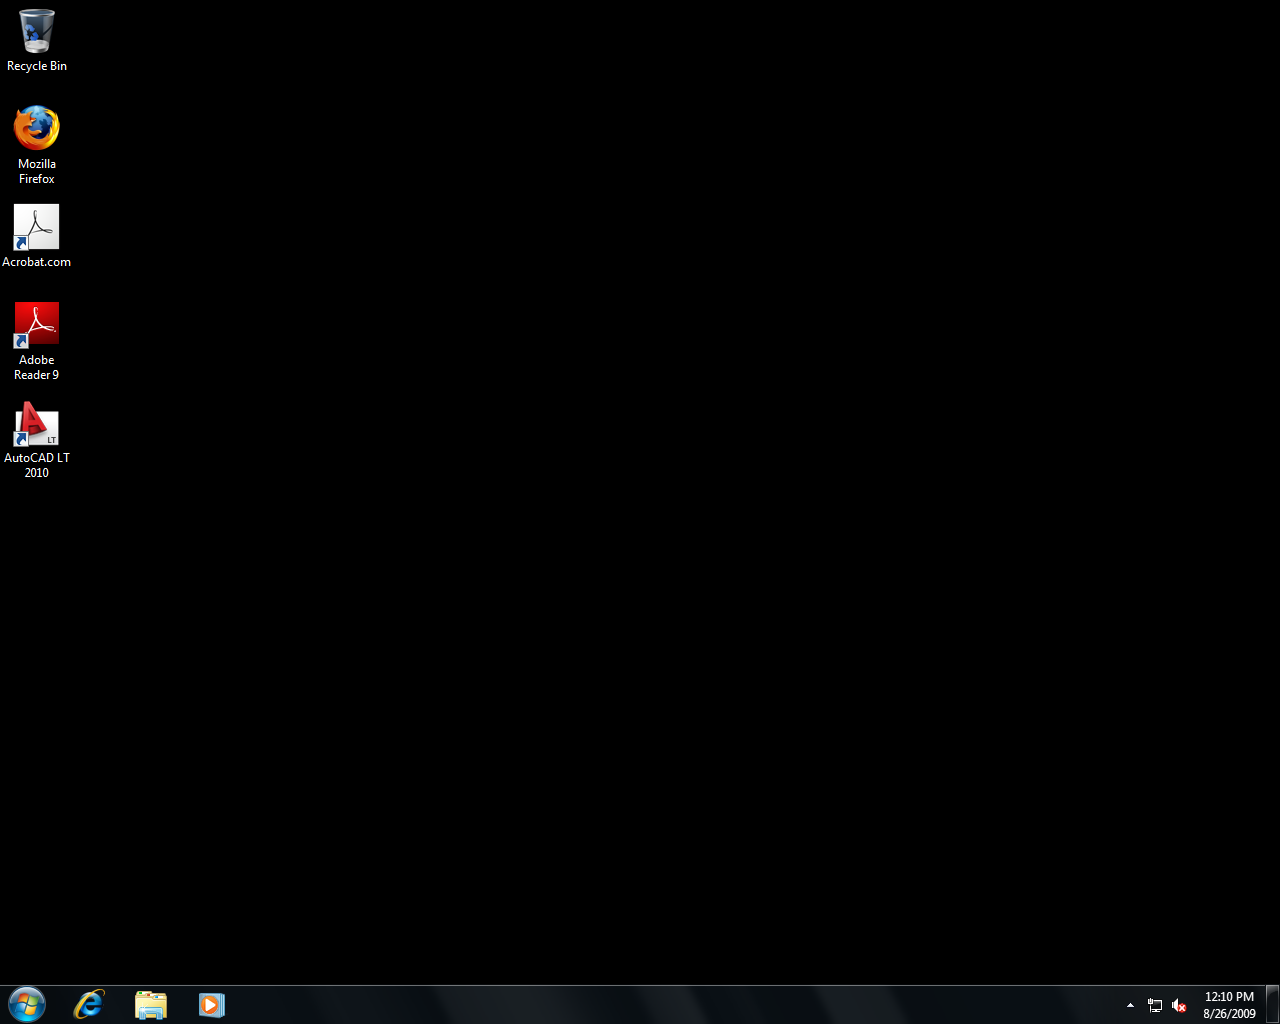 Wallpaper via Group Policy and Windows 7 1280x1024